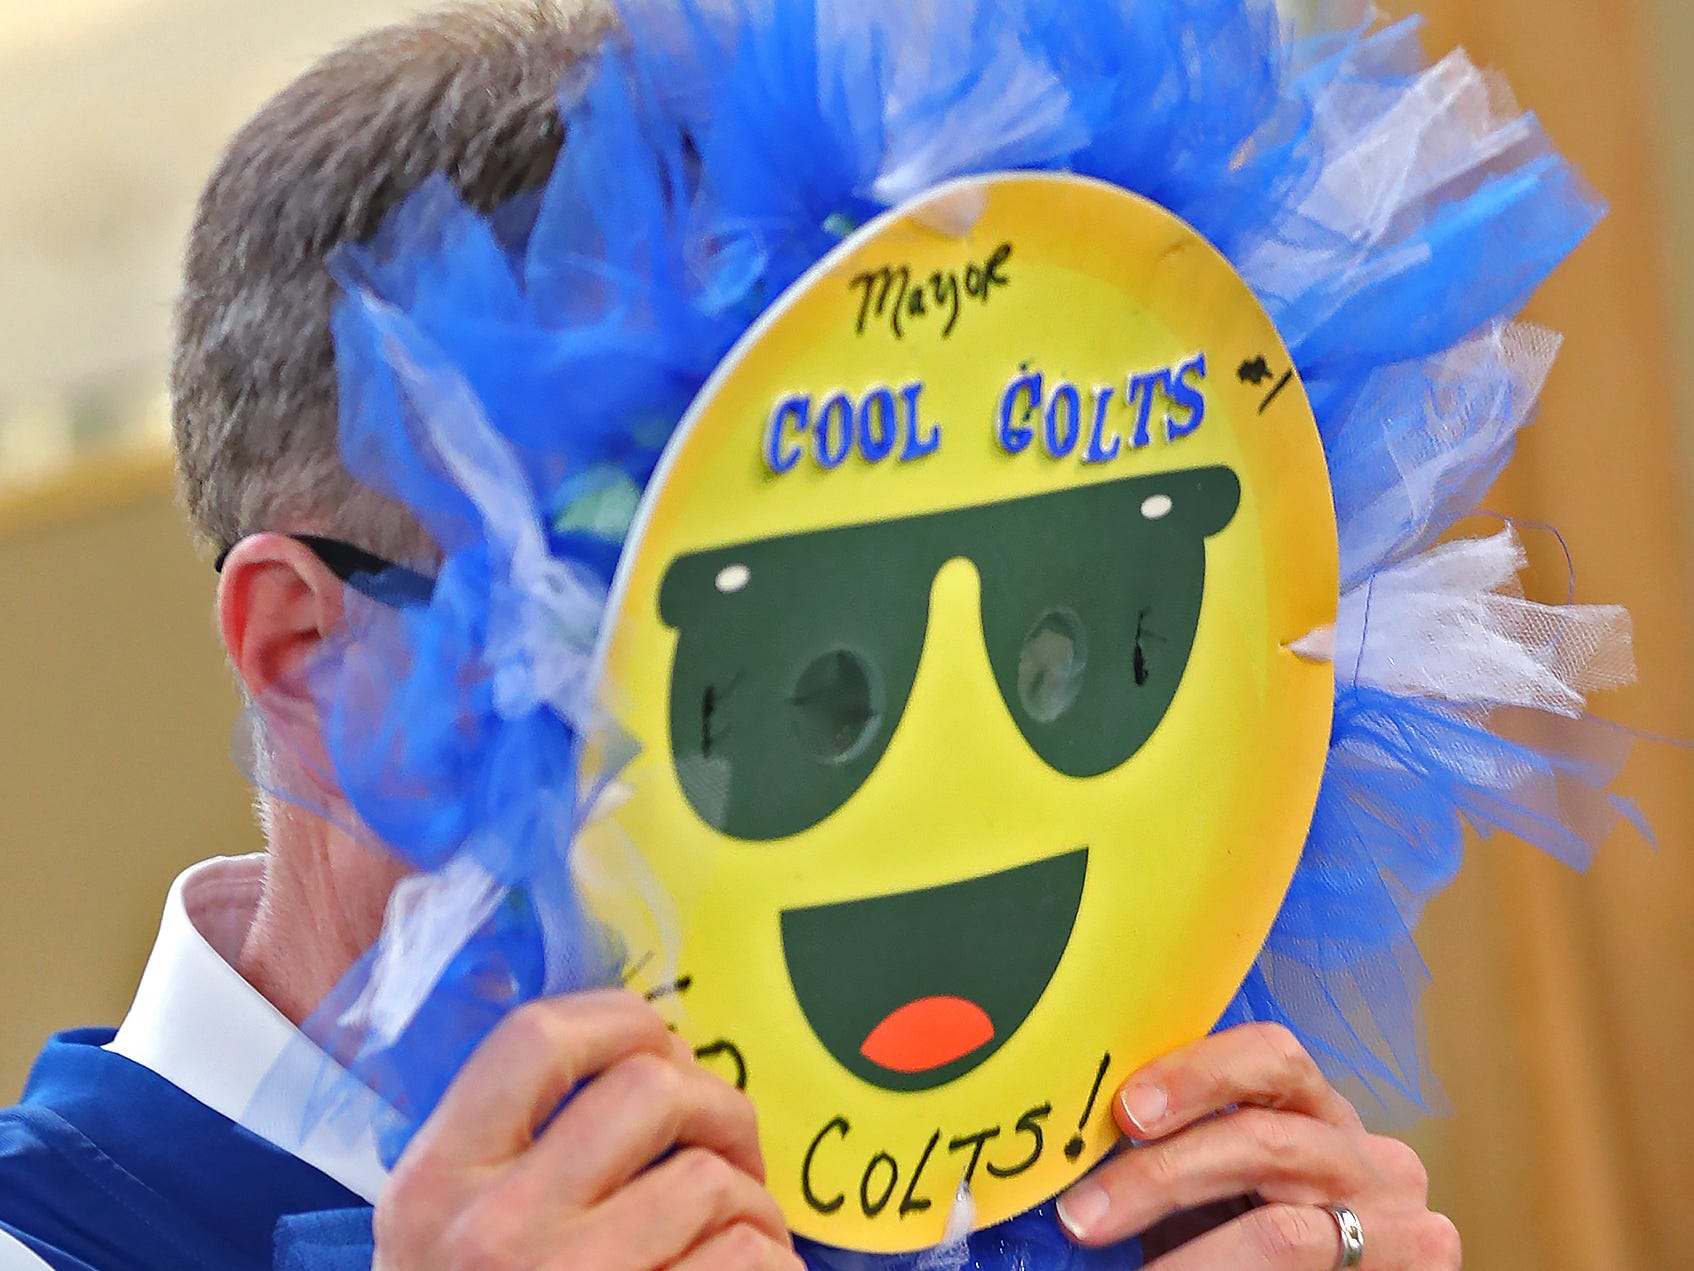 Mayor Joe Hogsett tries on a fan mask made for him by Lonna White at the City Market.  Fans had the opportunity to sign a 1-0 banner for the Colts at City Market, Thursday, Jan. 10, 2019.  The banner will be displayed for the team to see at the airport as they head off to their Kansas City playoff game.